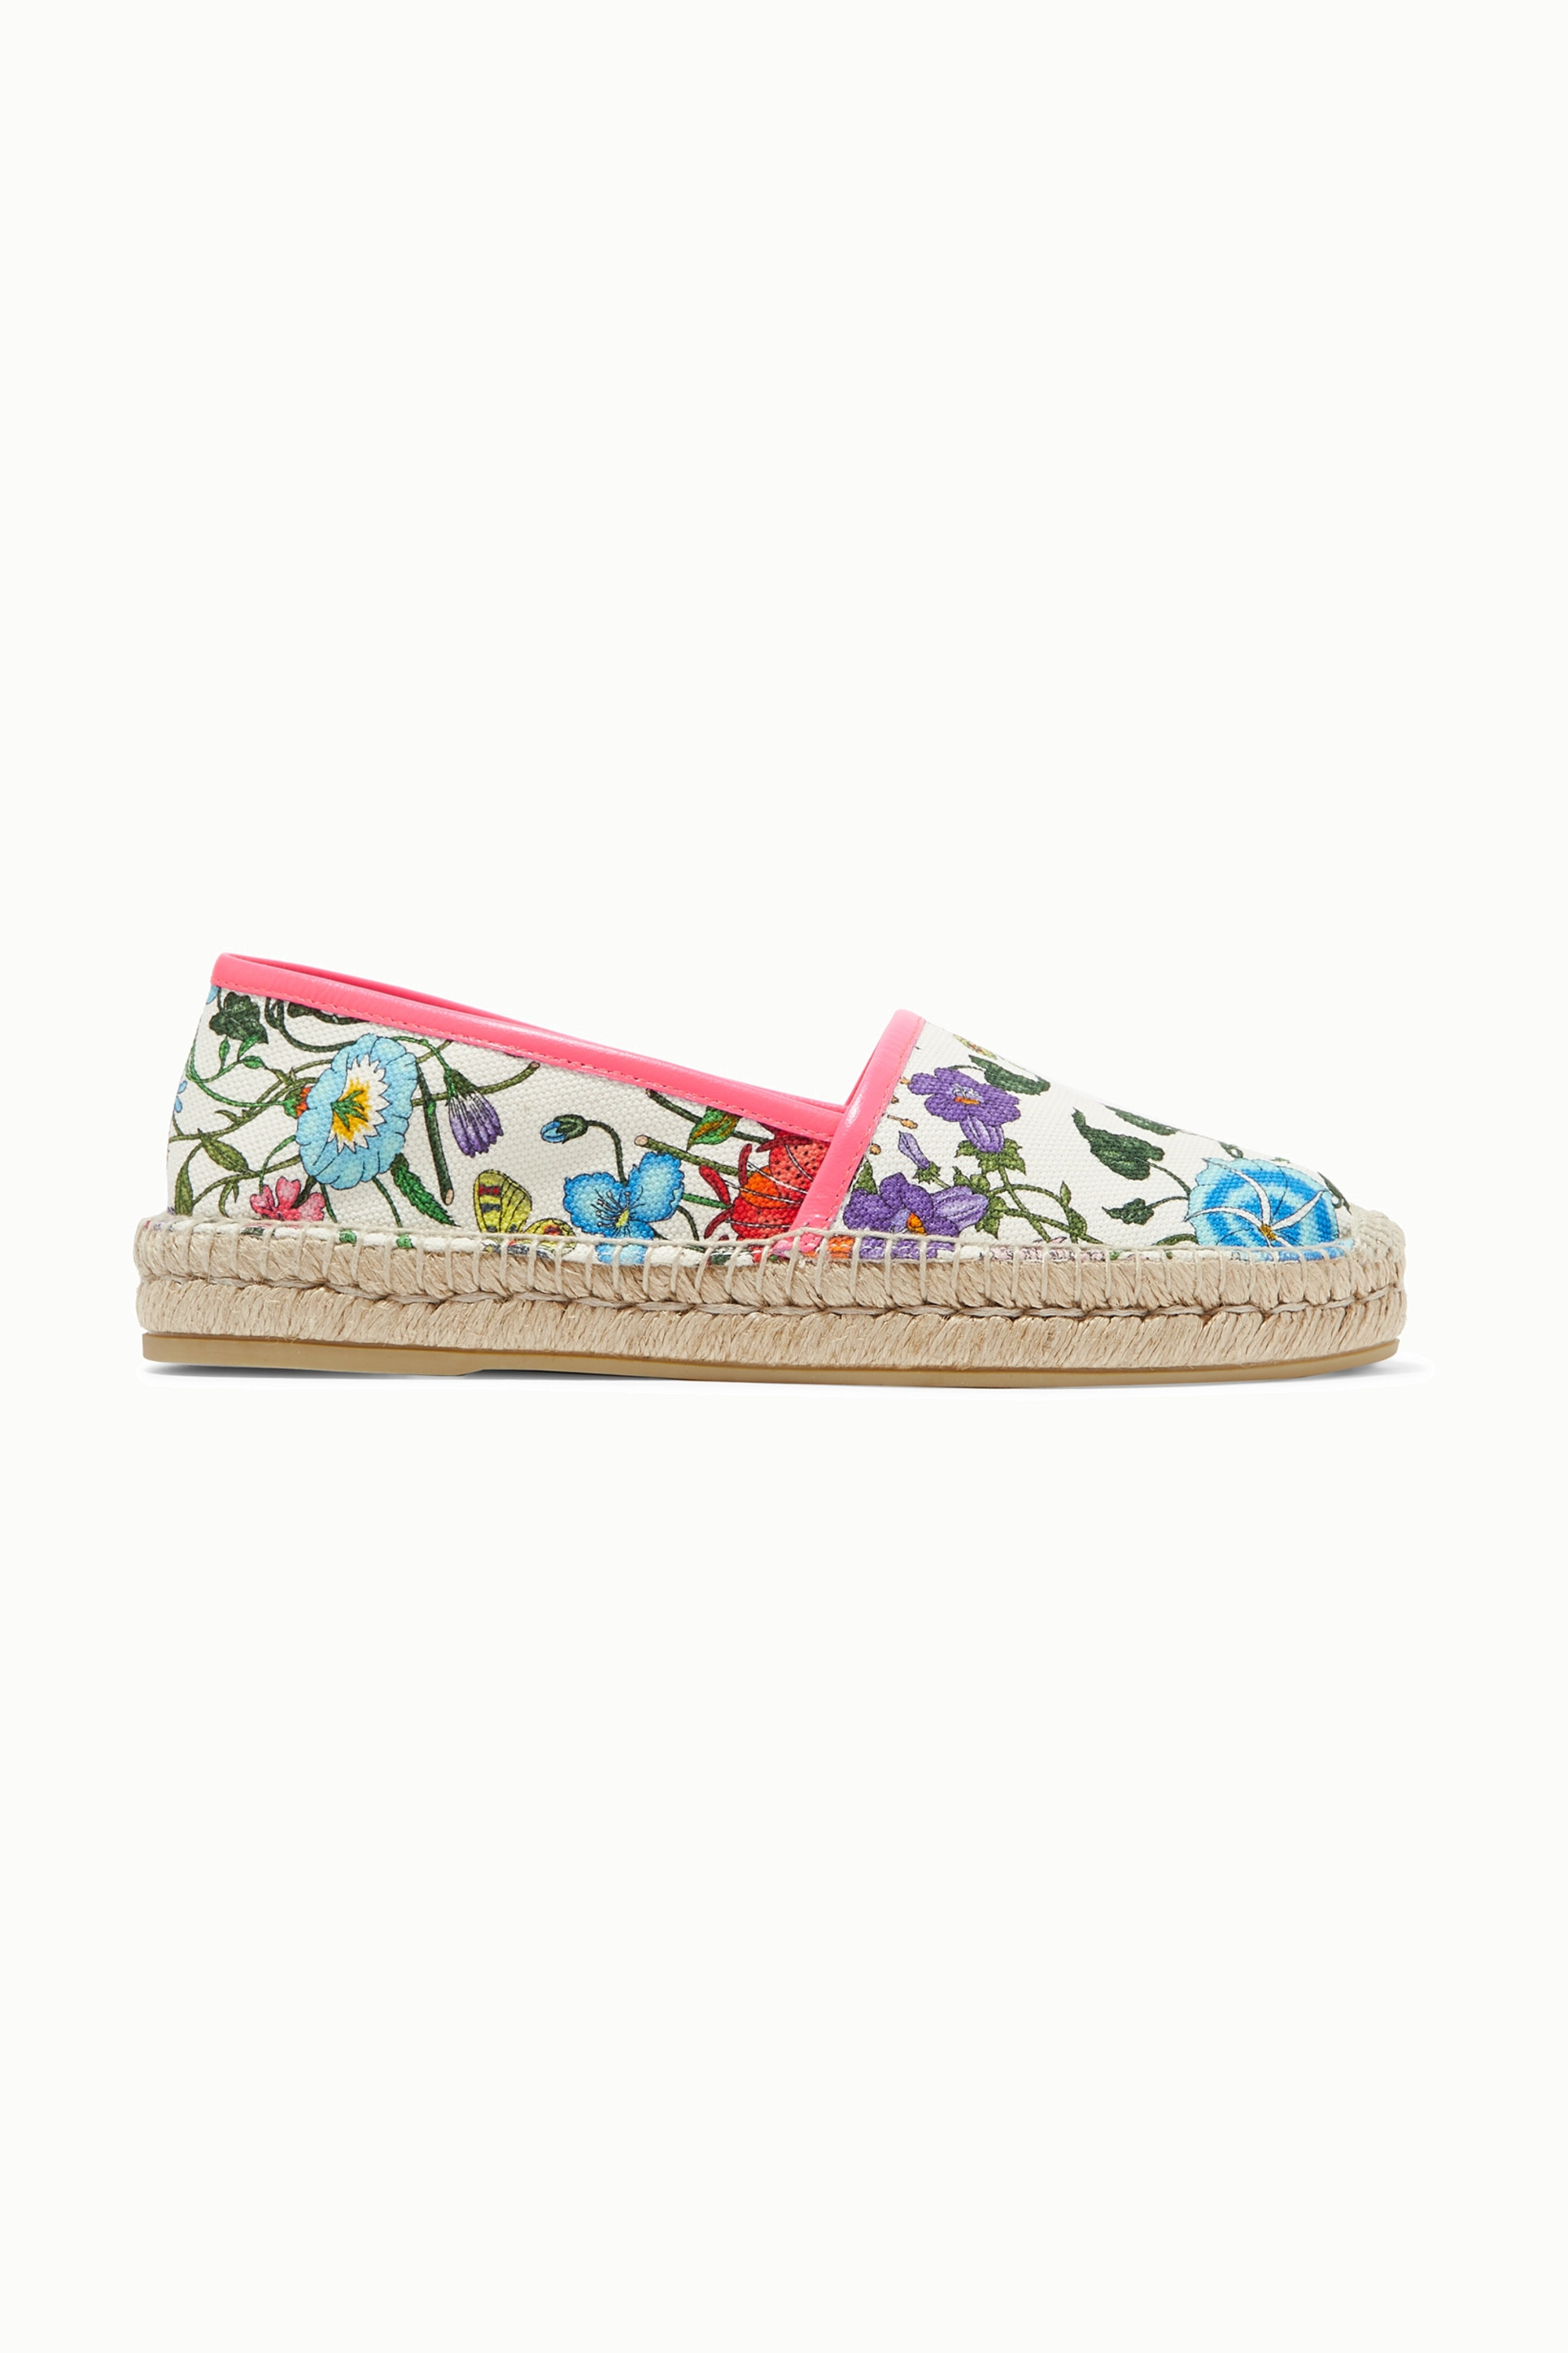 Gucci Leather-trimmed floral-print canvas espadrilles